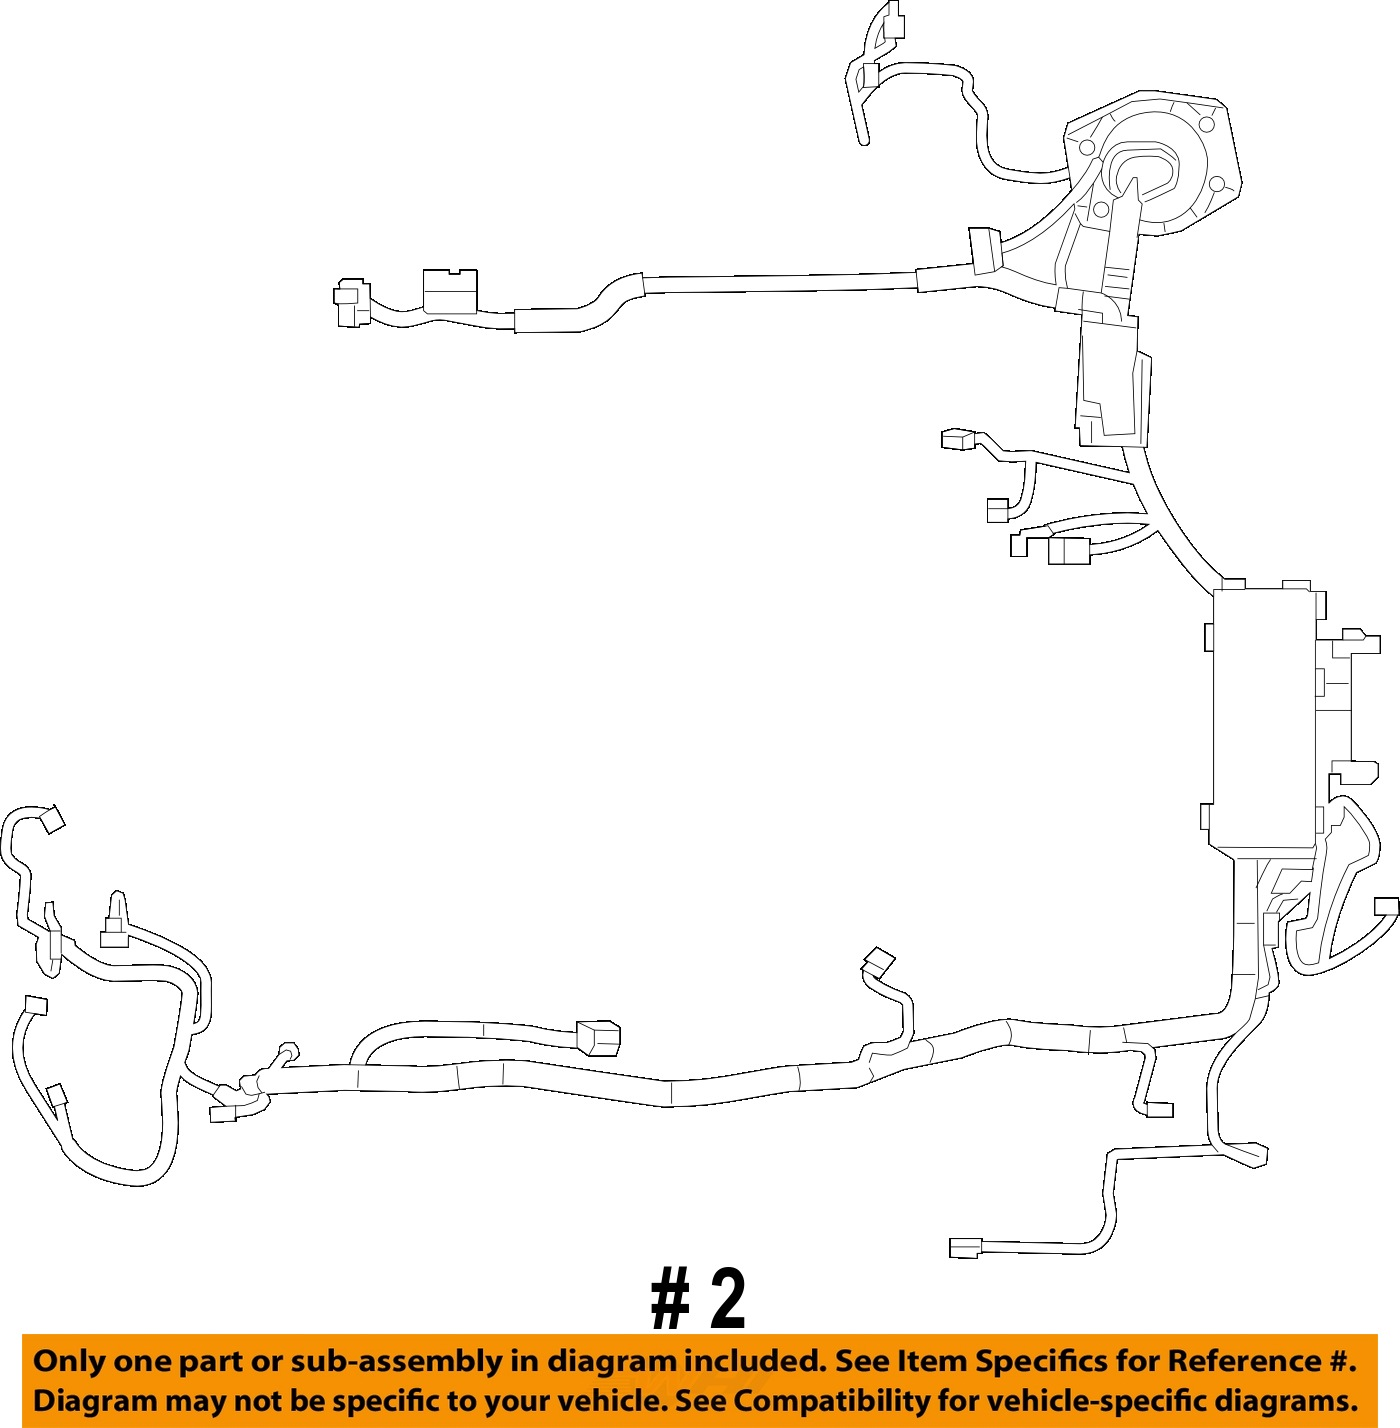 Scion Tc Power Window Wiring Diagram Library 06 Stereo Dodge Stratus 2006 Ignition